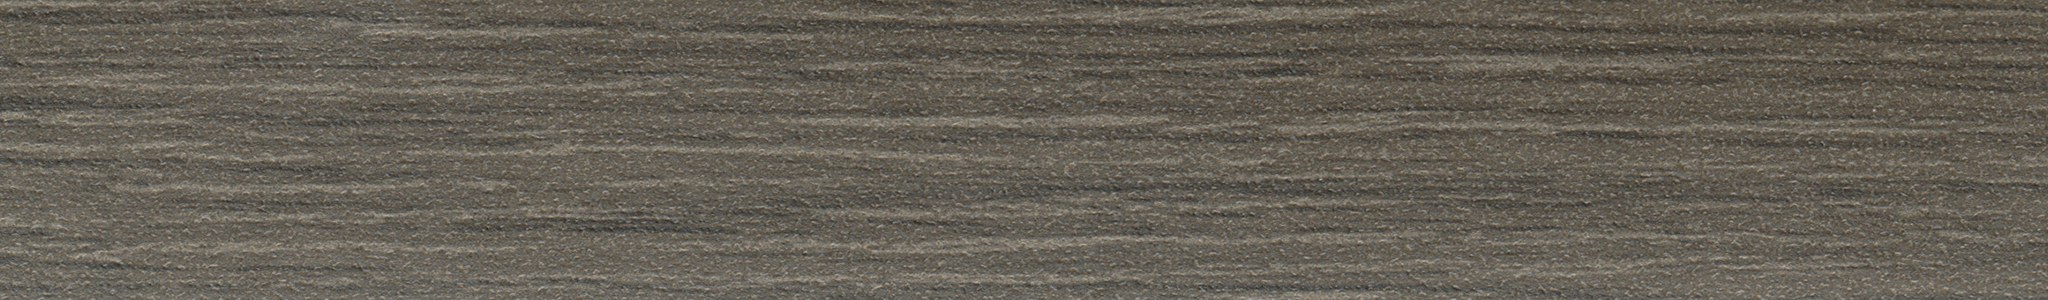 HD 293732 Chant ABS Hickory Brun Perle